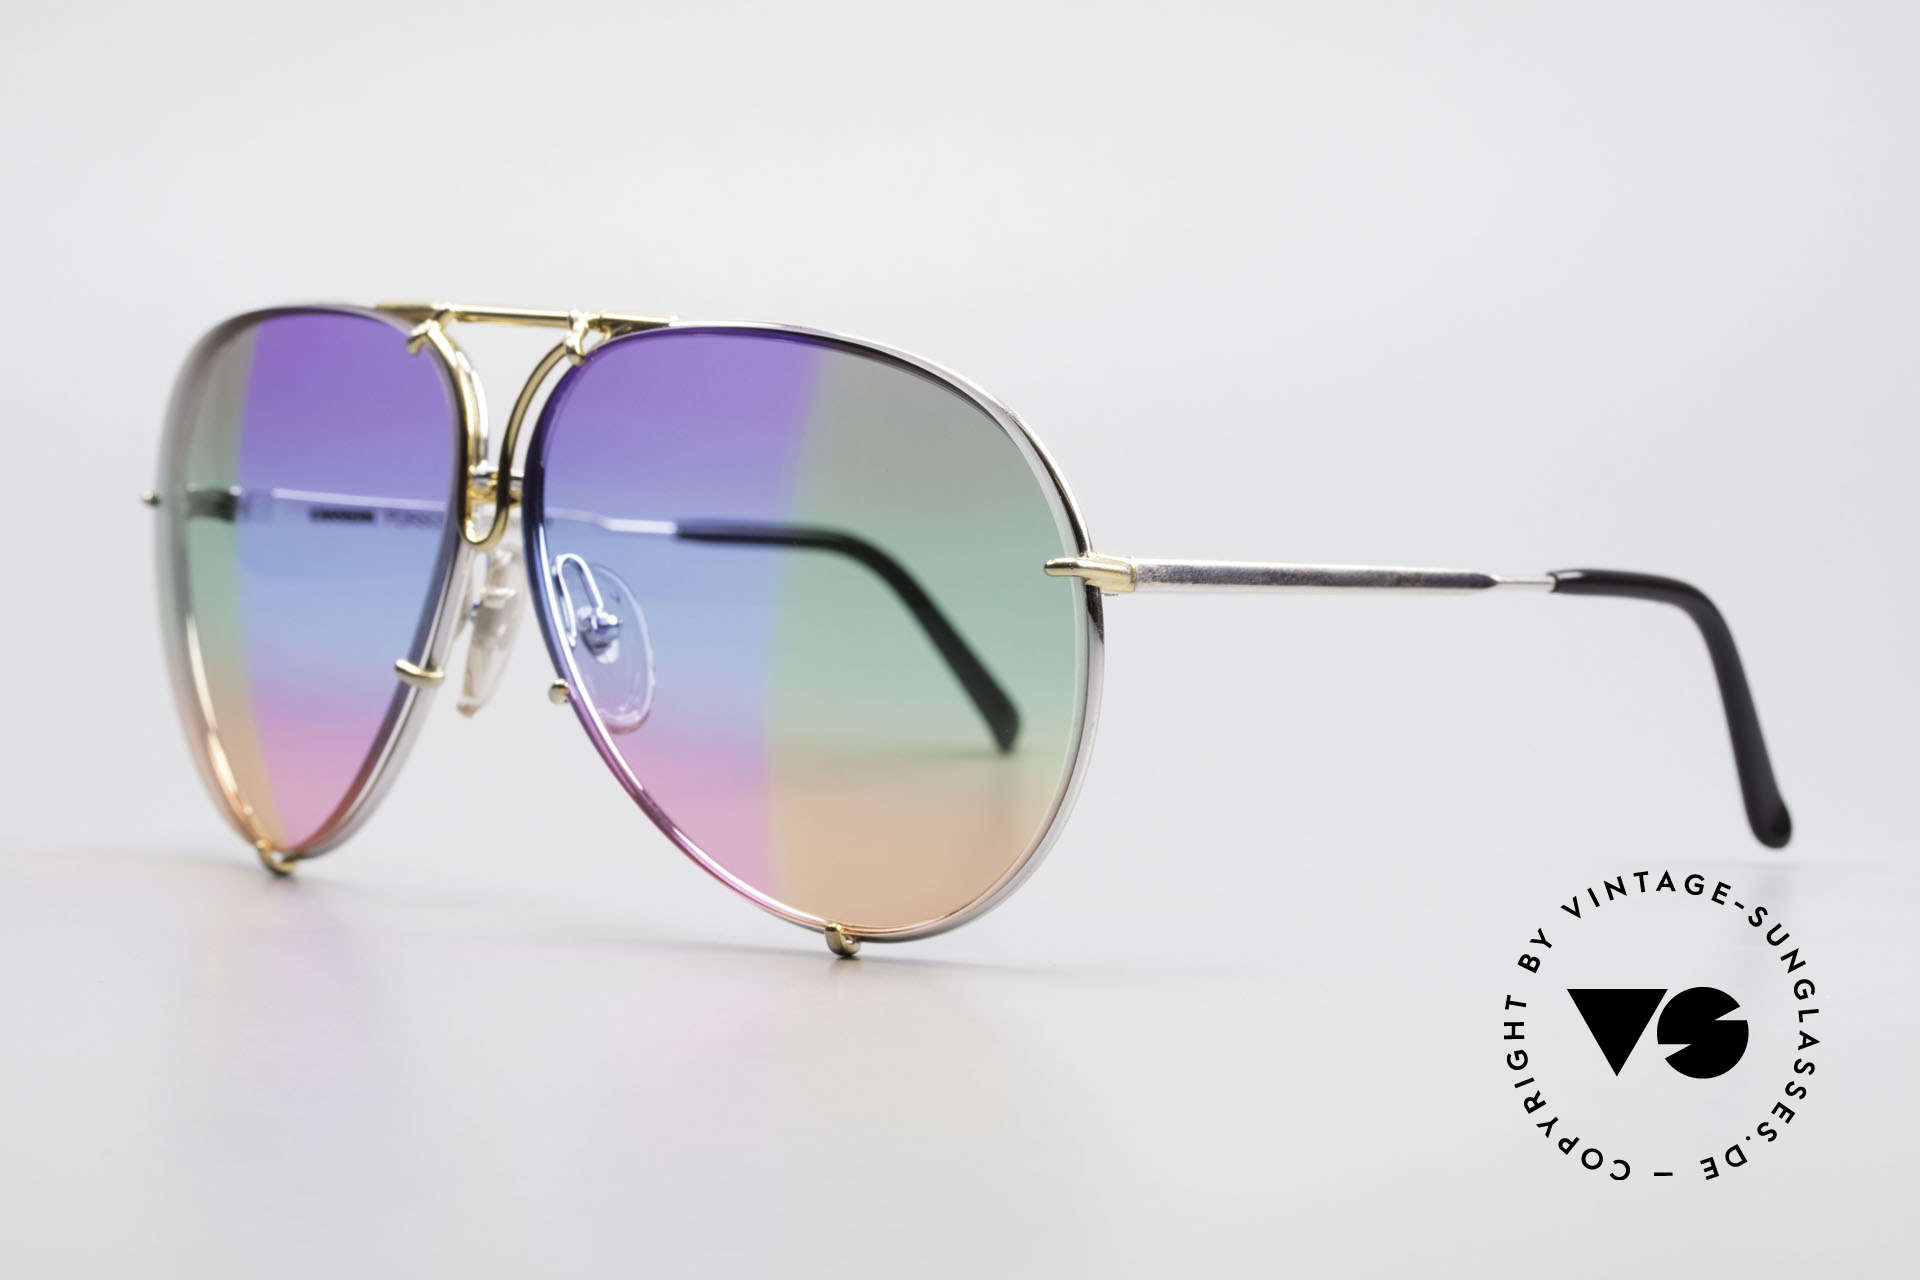 Porsche 5623 One Of A Kind 6times Gradient, sextuple colored: purple/blue/pink olive/green/yellow, Made for Men and Women